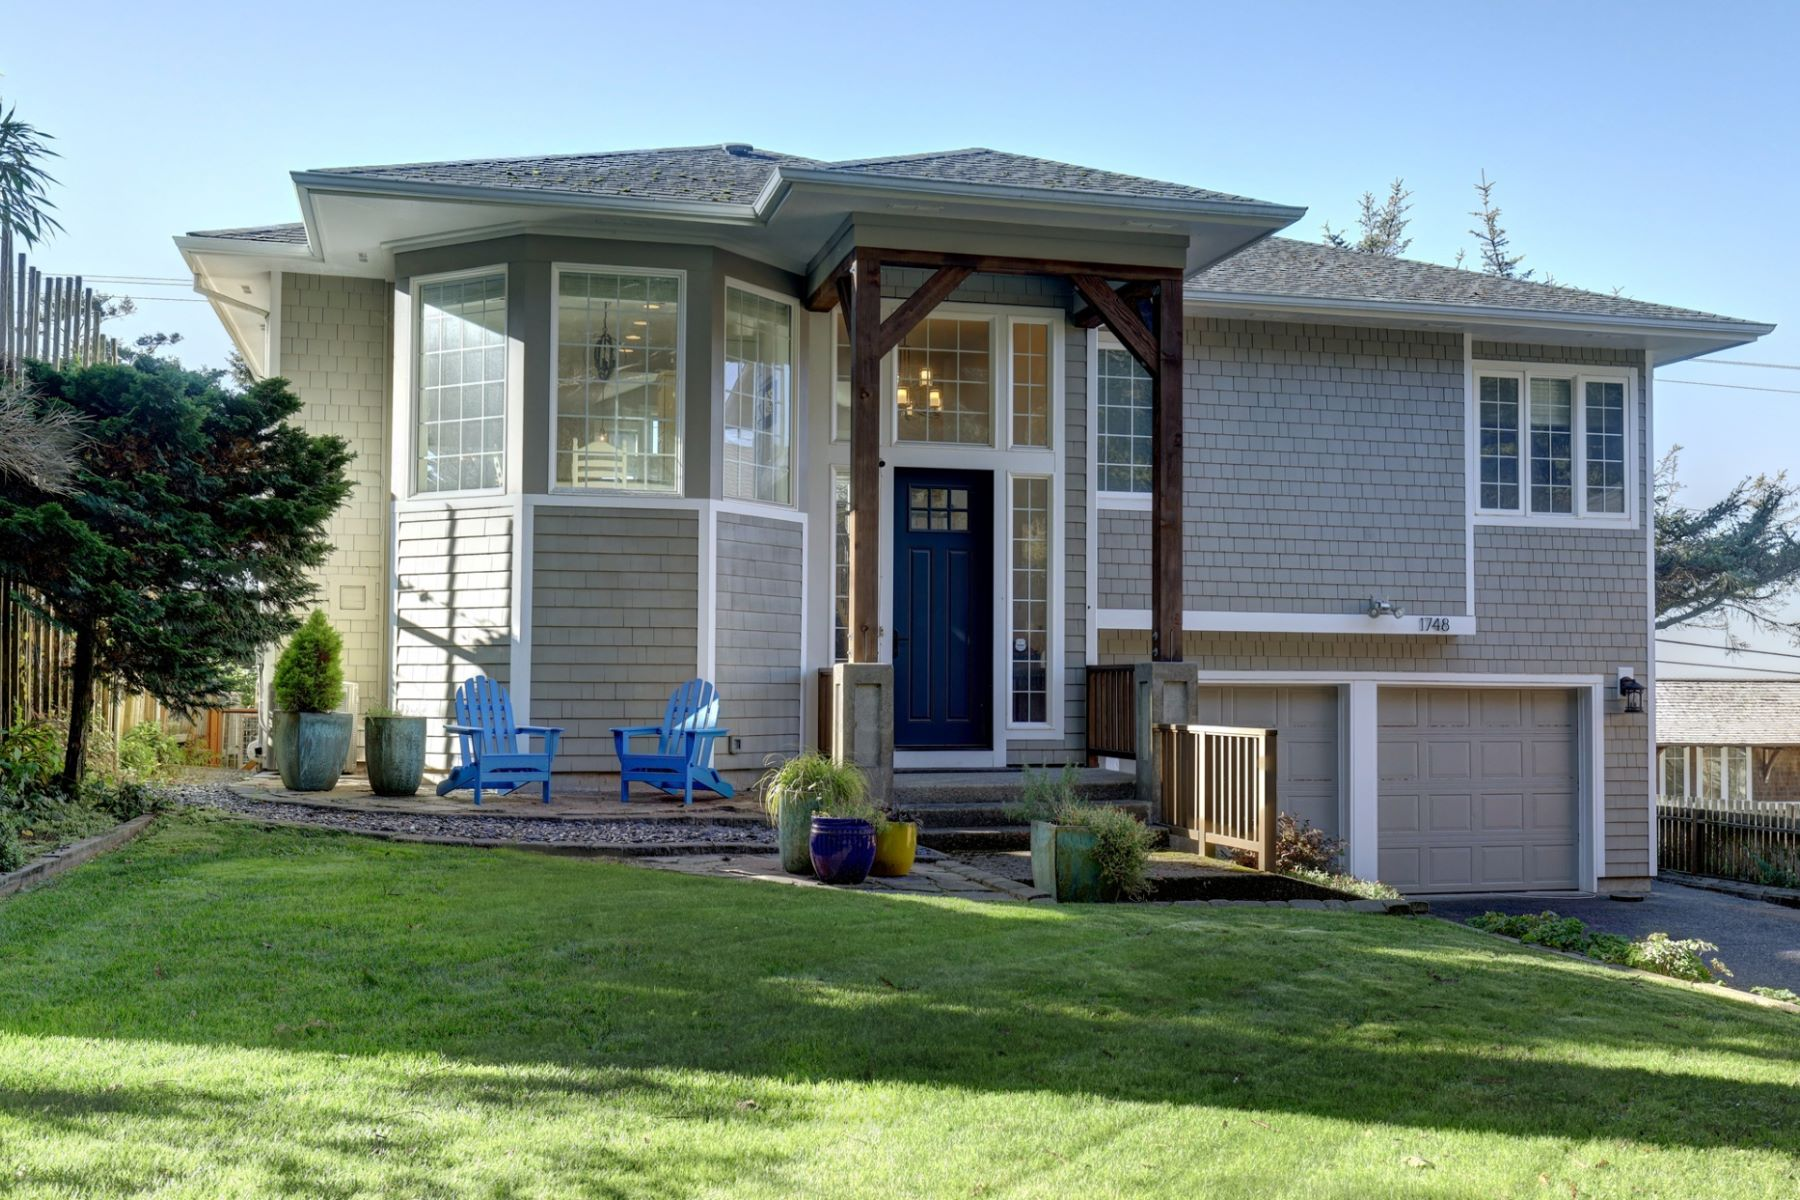 Other Residential Homes for Active at 1748 View Point Terrace Cannon Beach, OR 97110 1748 View Point Terrace Cannon Beach, Oregon 97110 United States